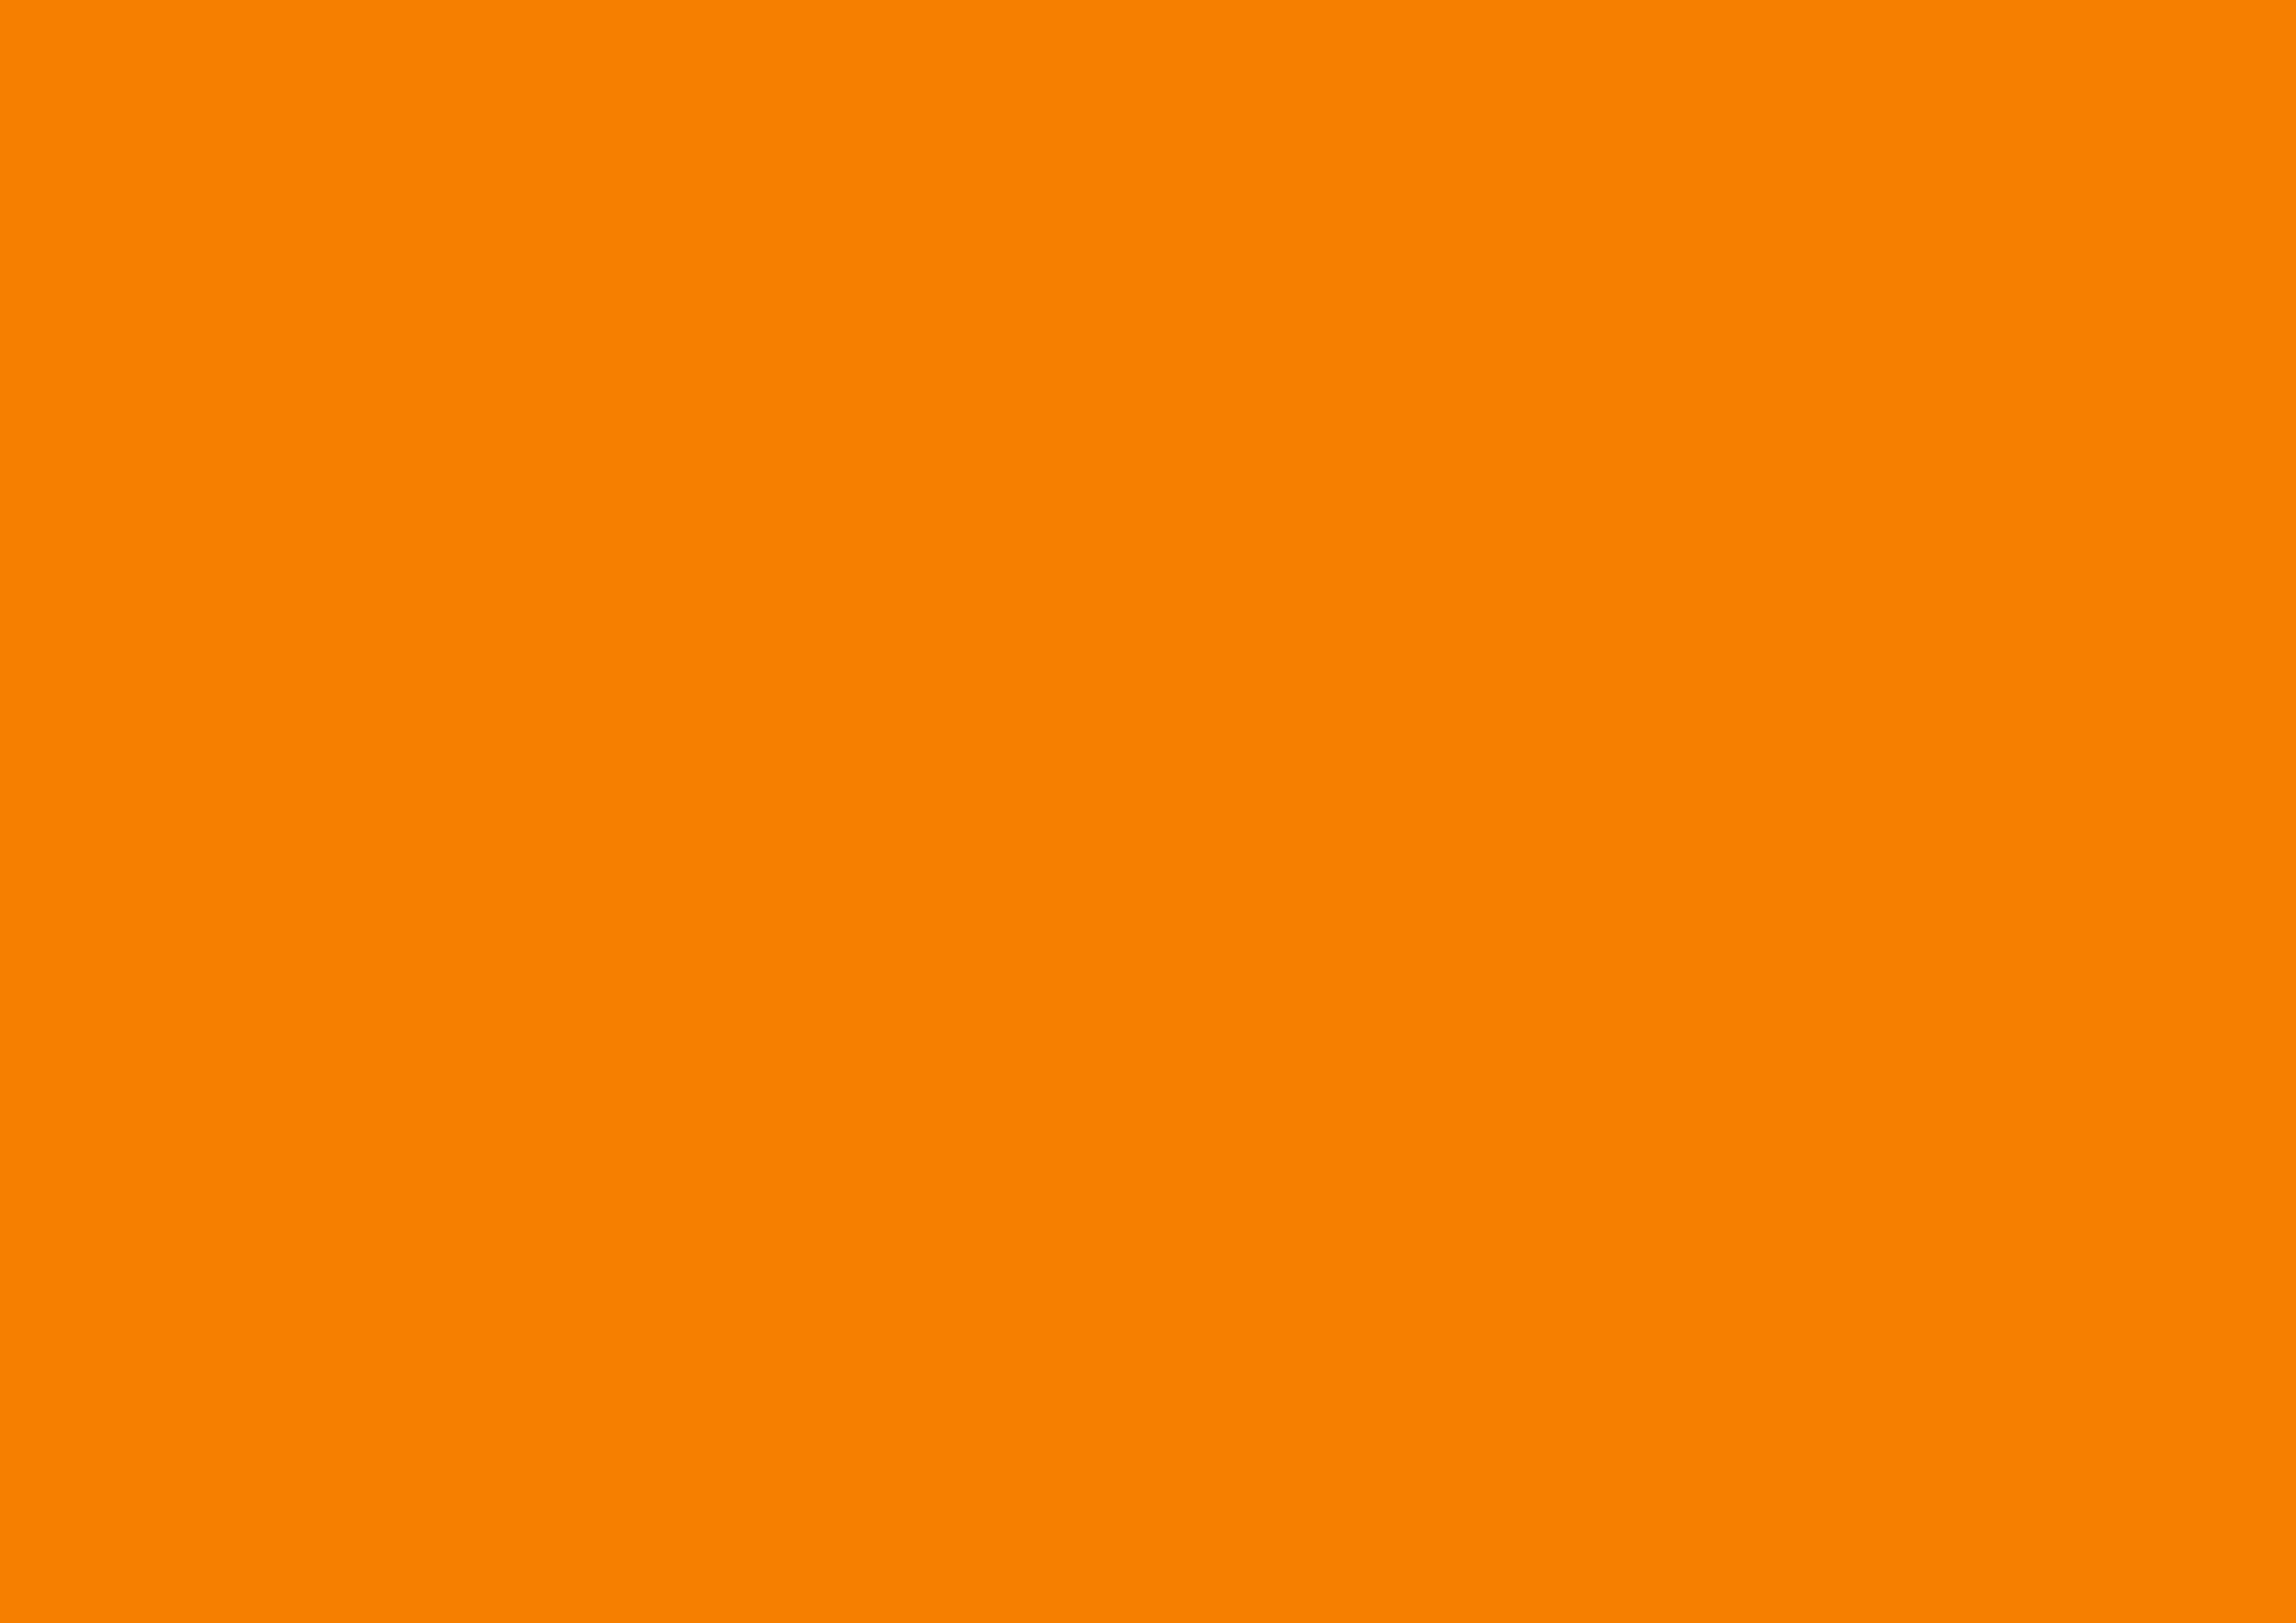 3508x2480 University Of Tennessee Orange Solid Color Background